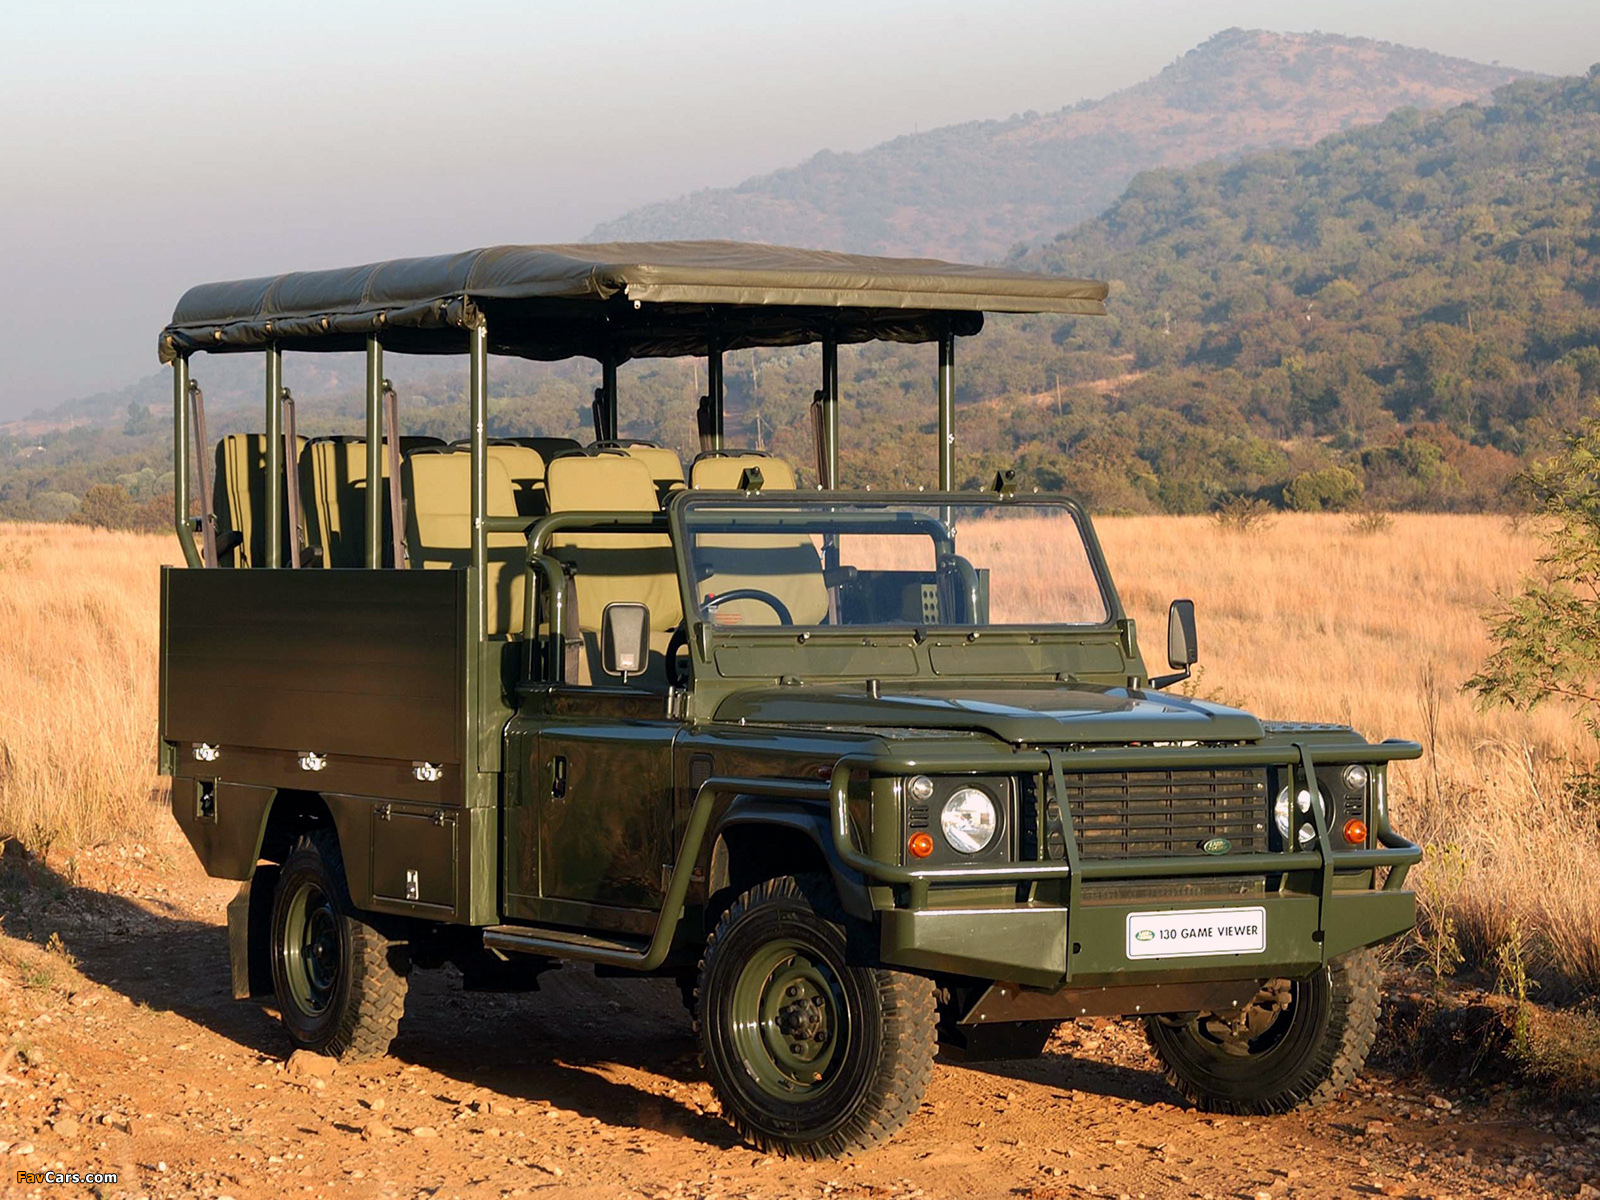 Land Rover Defender 130 Game Viewer images (1600 x 1200)